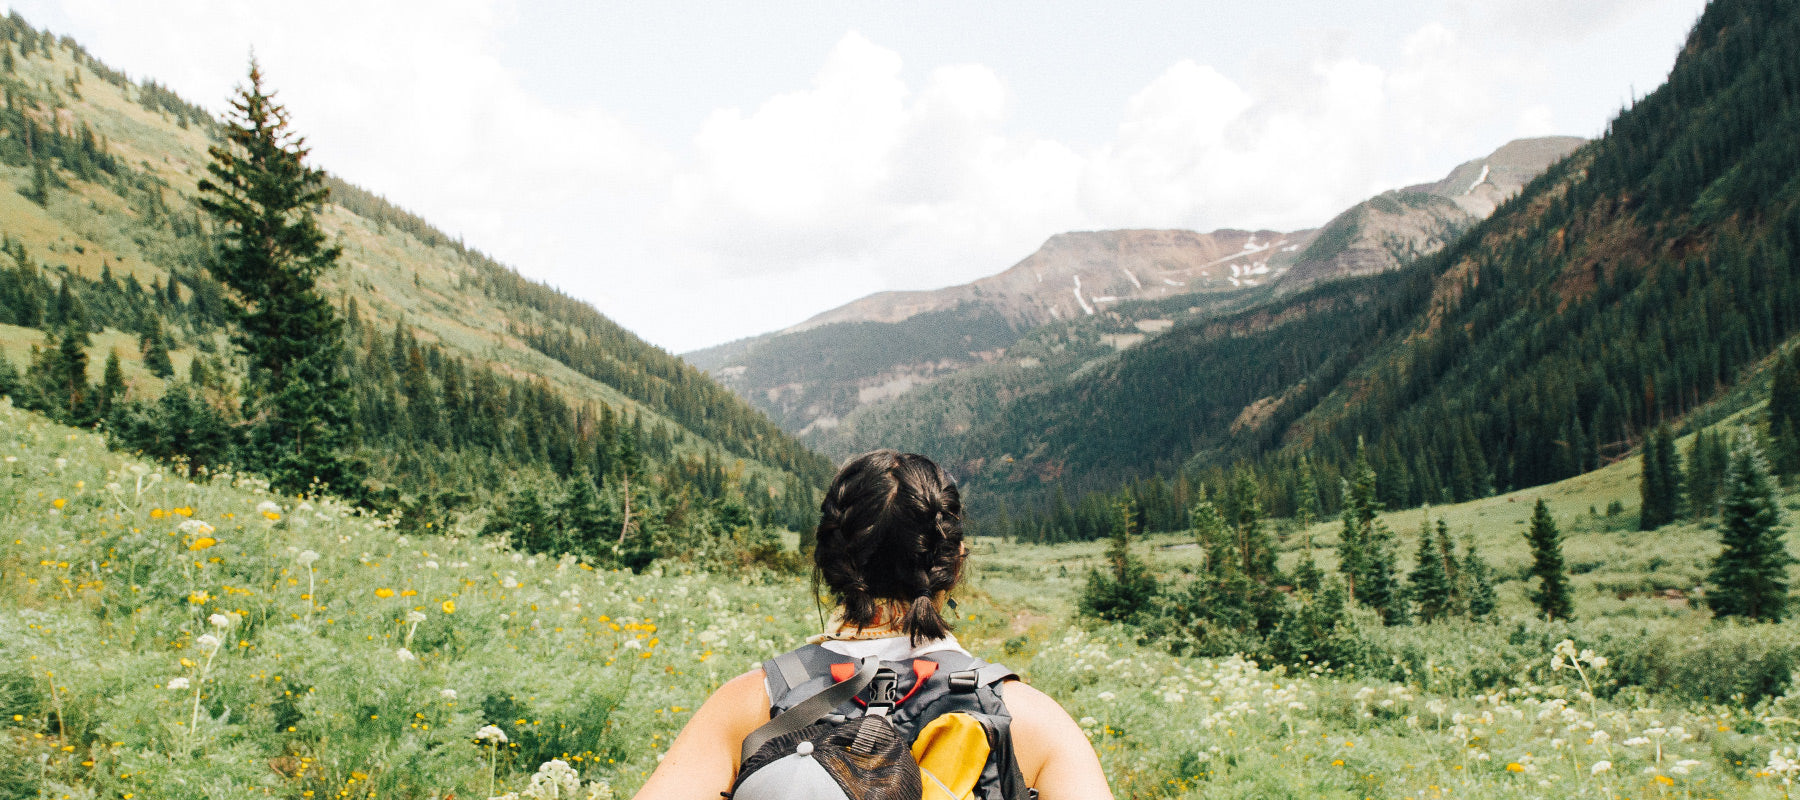 woman with a backpack hiking in the mountains